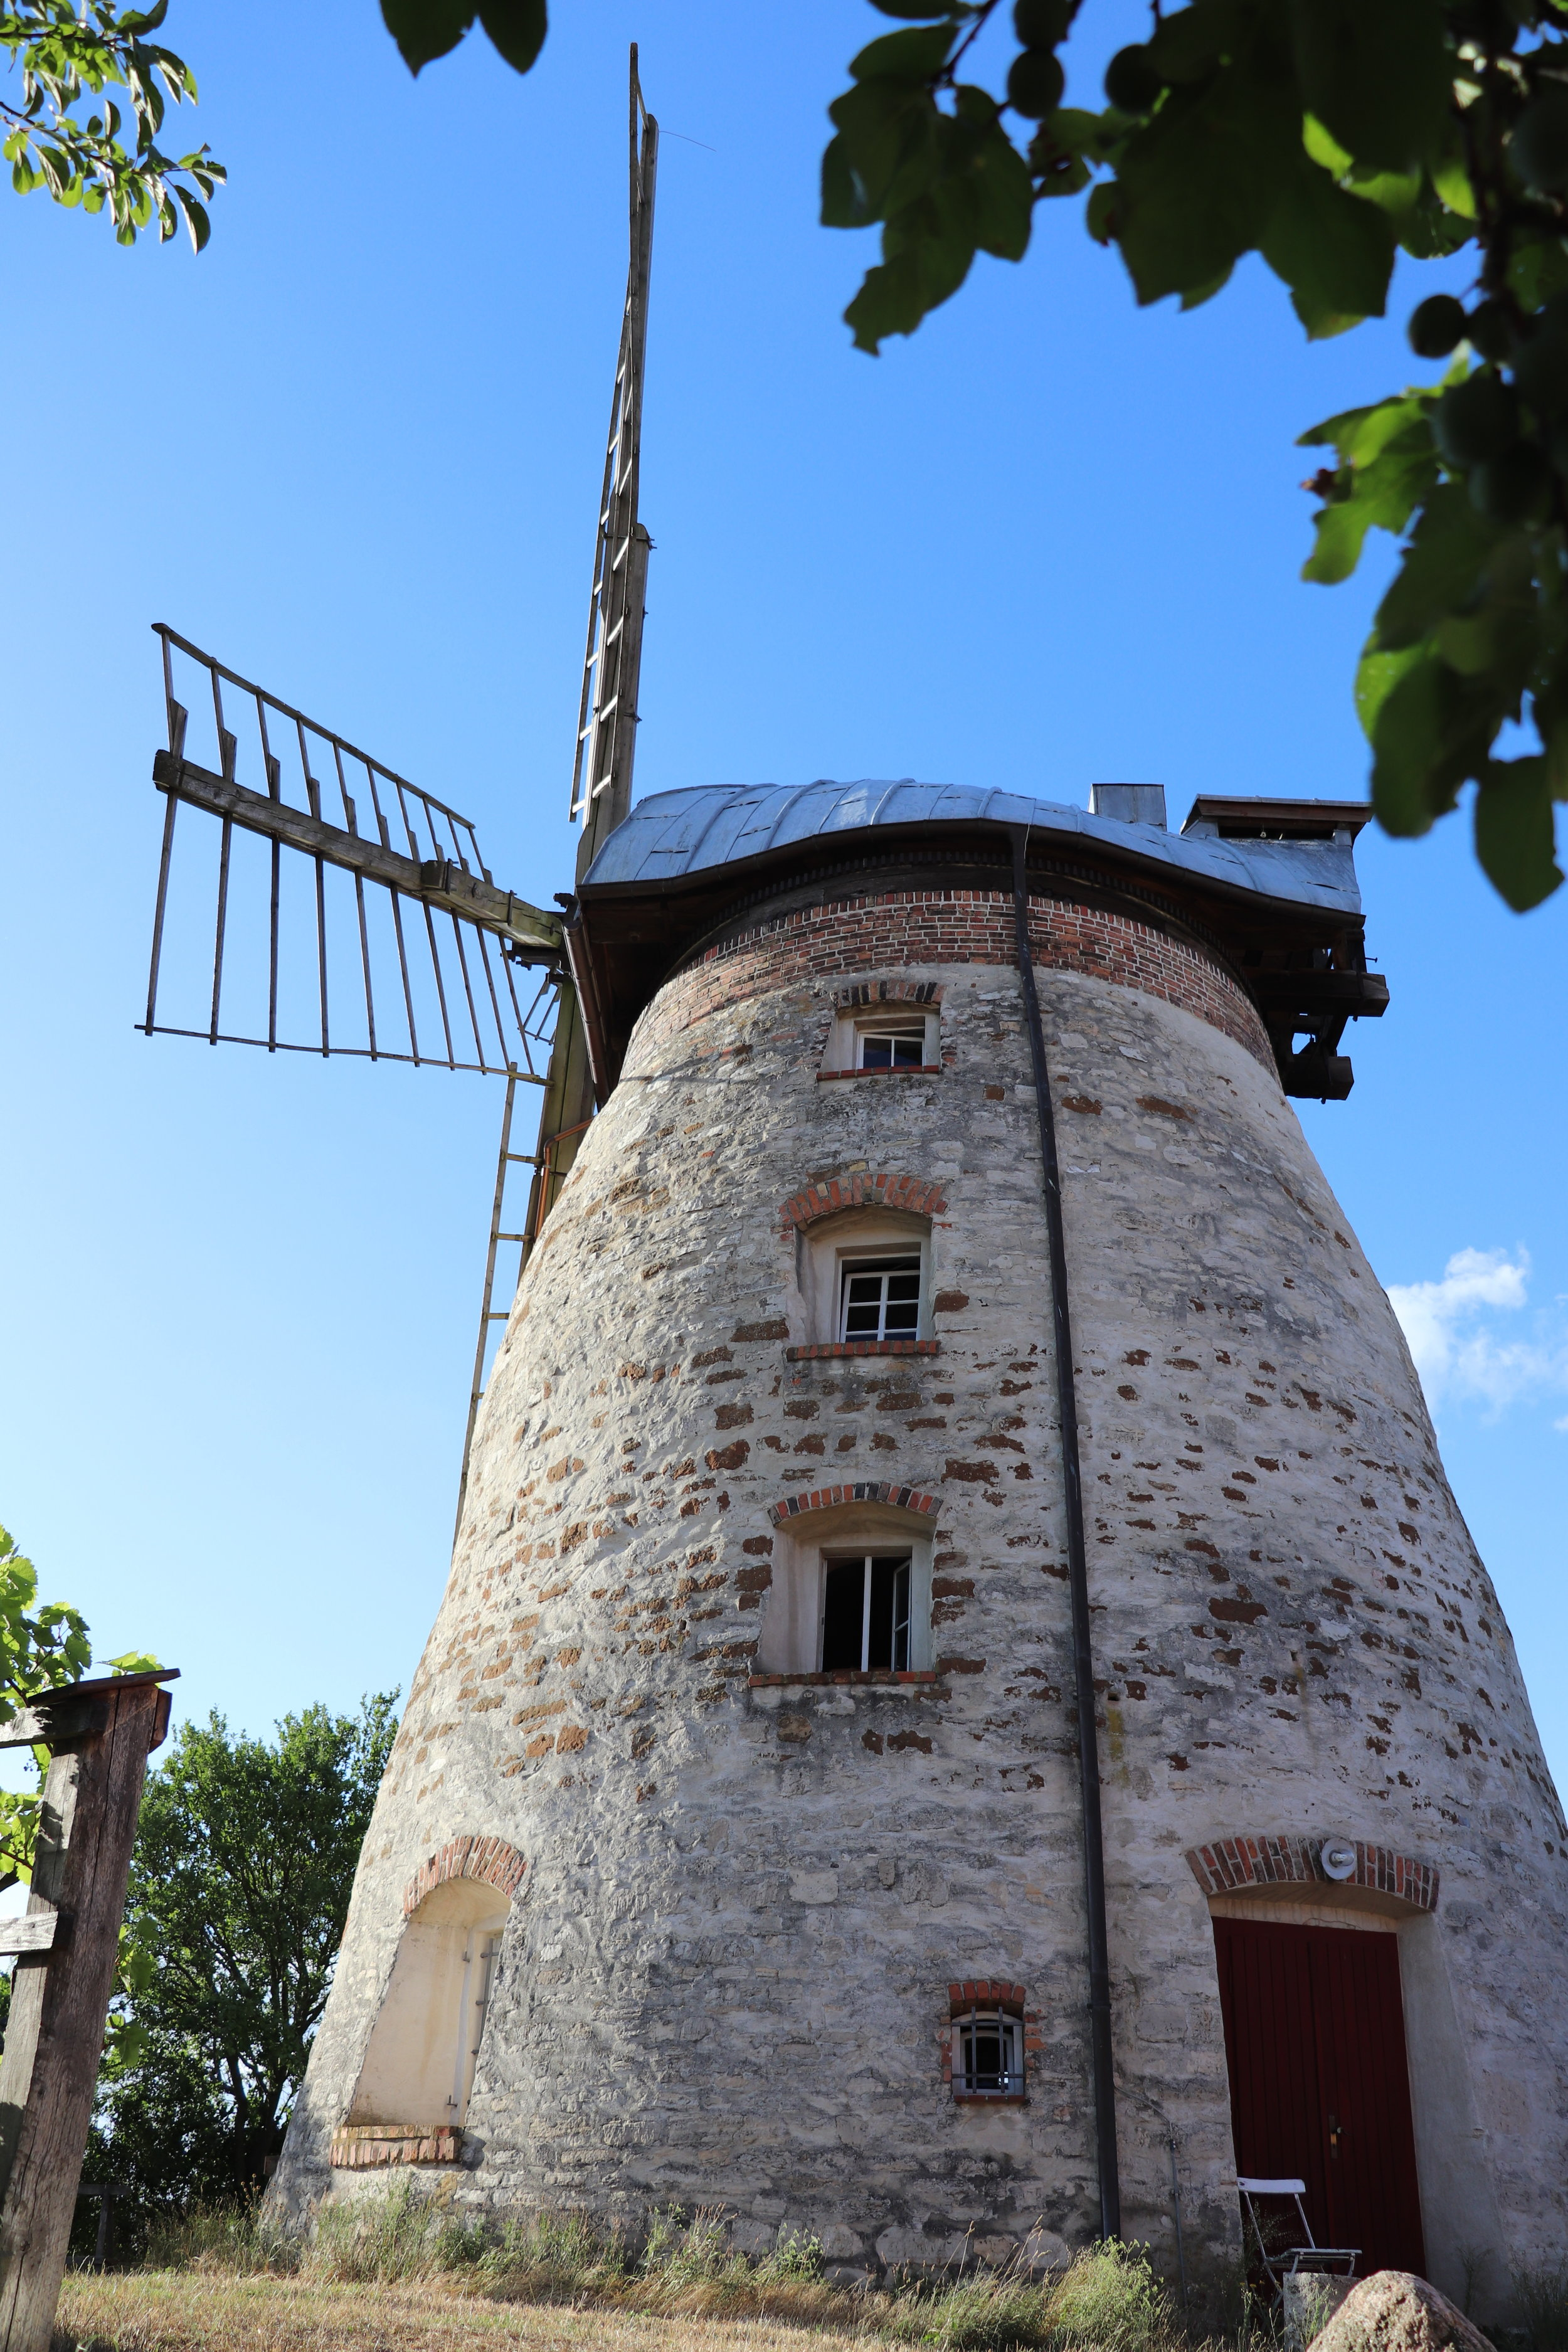 The owner of this windmill, an architect, bought it with two other friends while still in high school. He then later bought their share and renovated the windmill as a weekend home for his family as well constructing historically accurate 19th-century cottages on the remaining land, one of which is my home base for the next month.